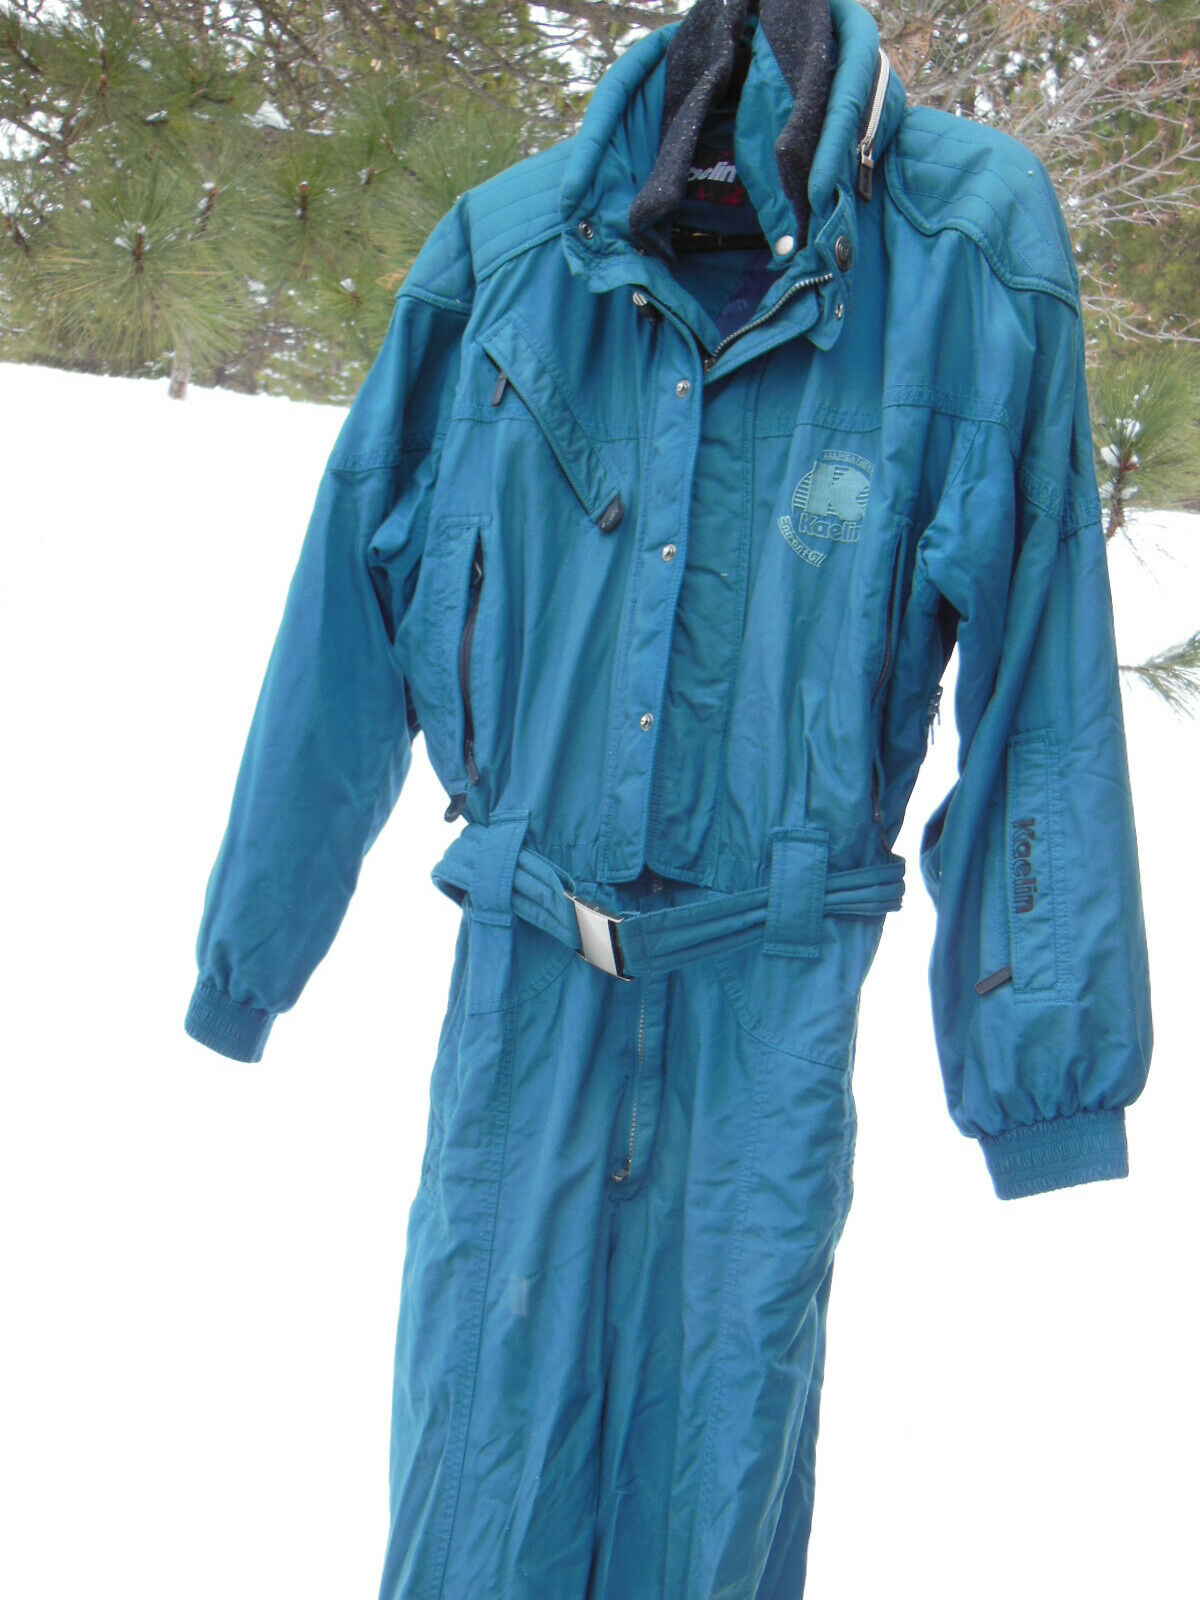 KAELIN Entrant GII Men's Ski Snowboard Snowmobiling JUMP SUIT Size  XL in Teal  hot sale online